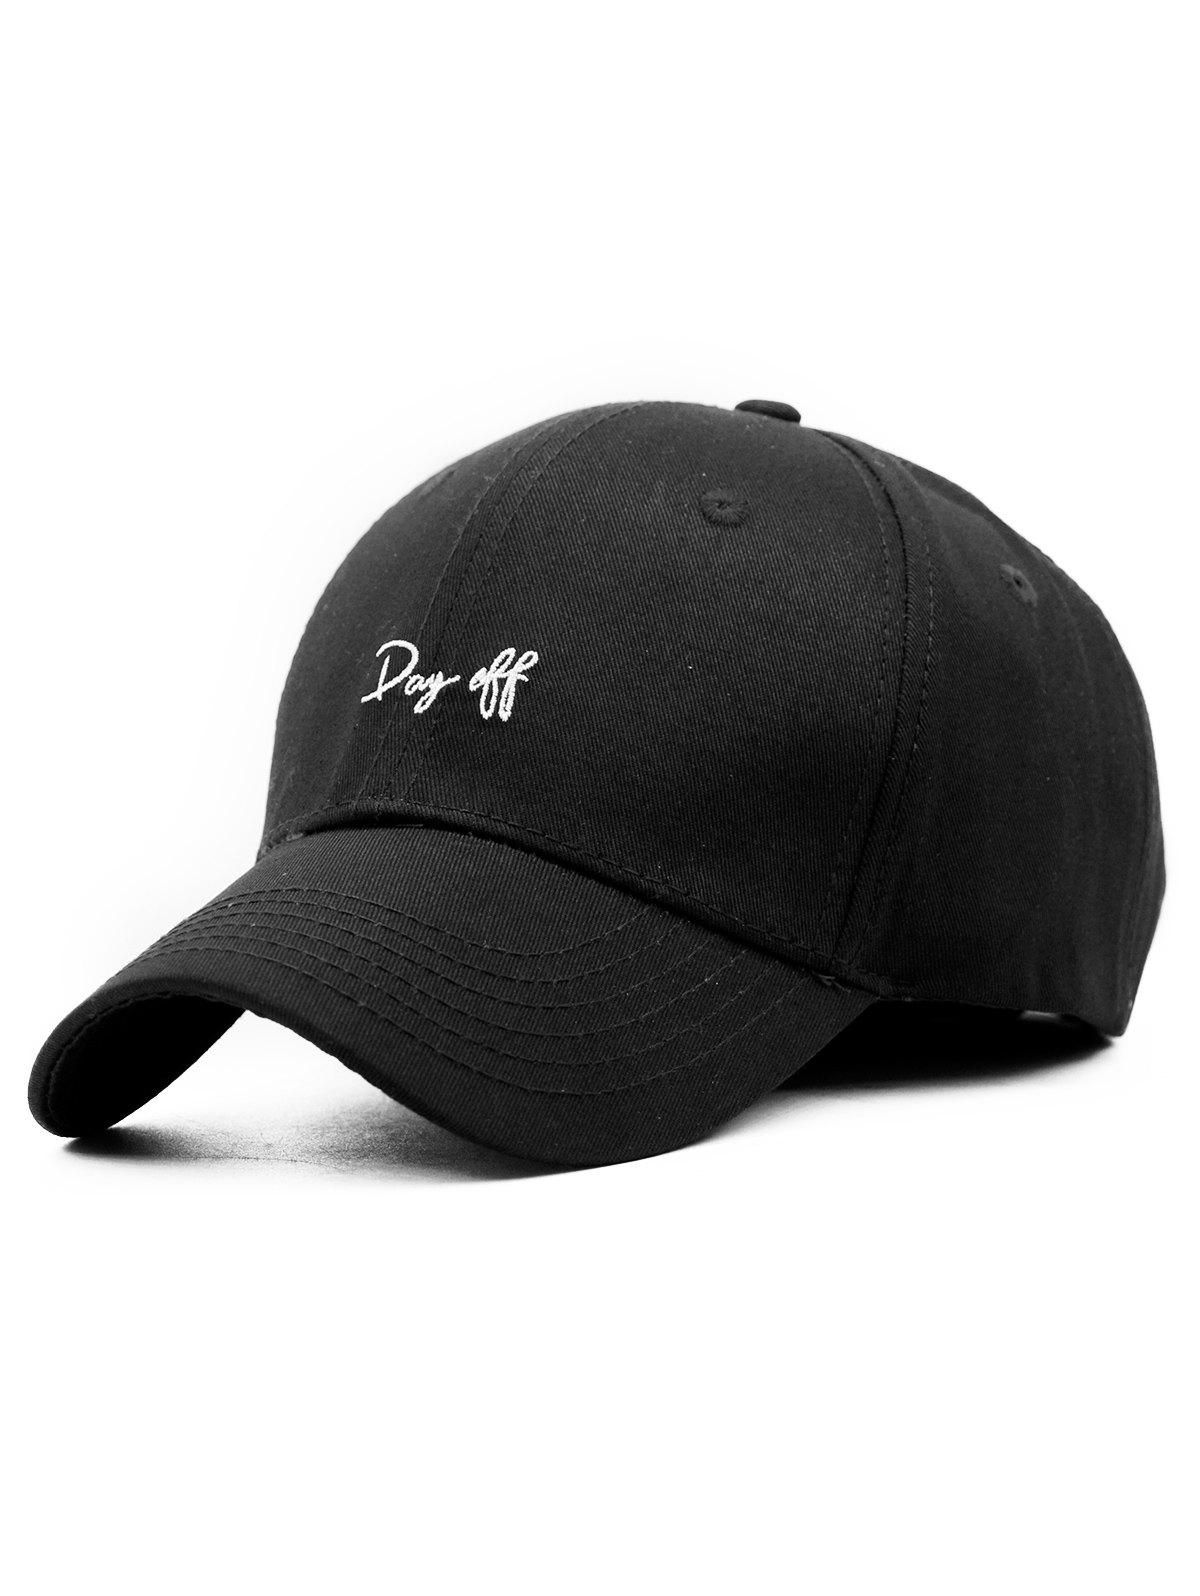 Fashion Day Off Embroidery Adjustable Baseball Hat